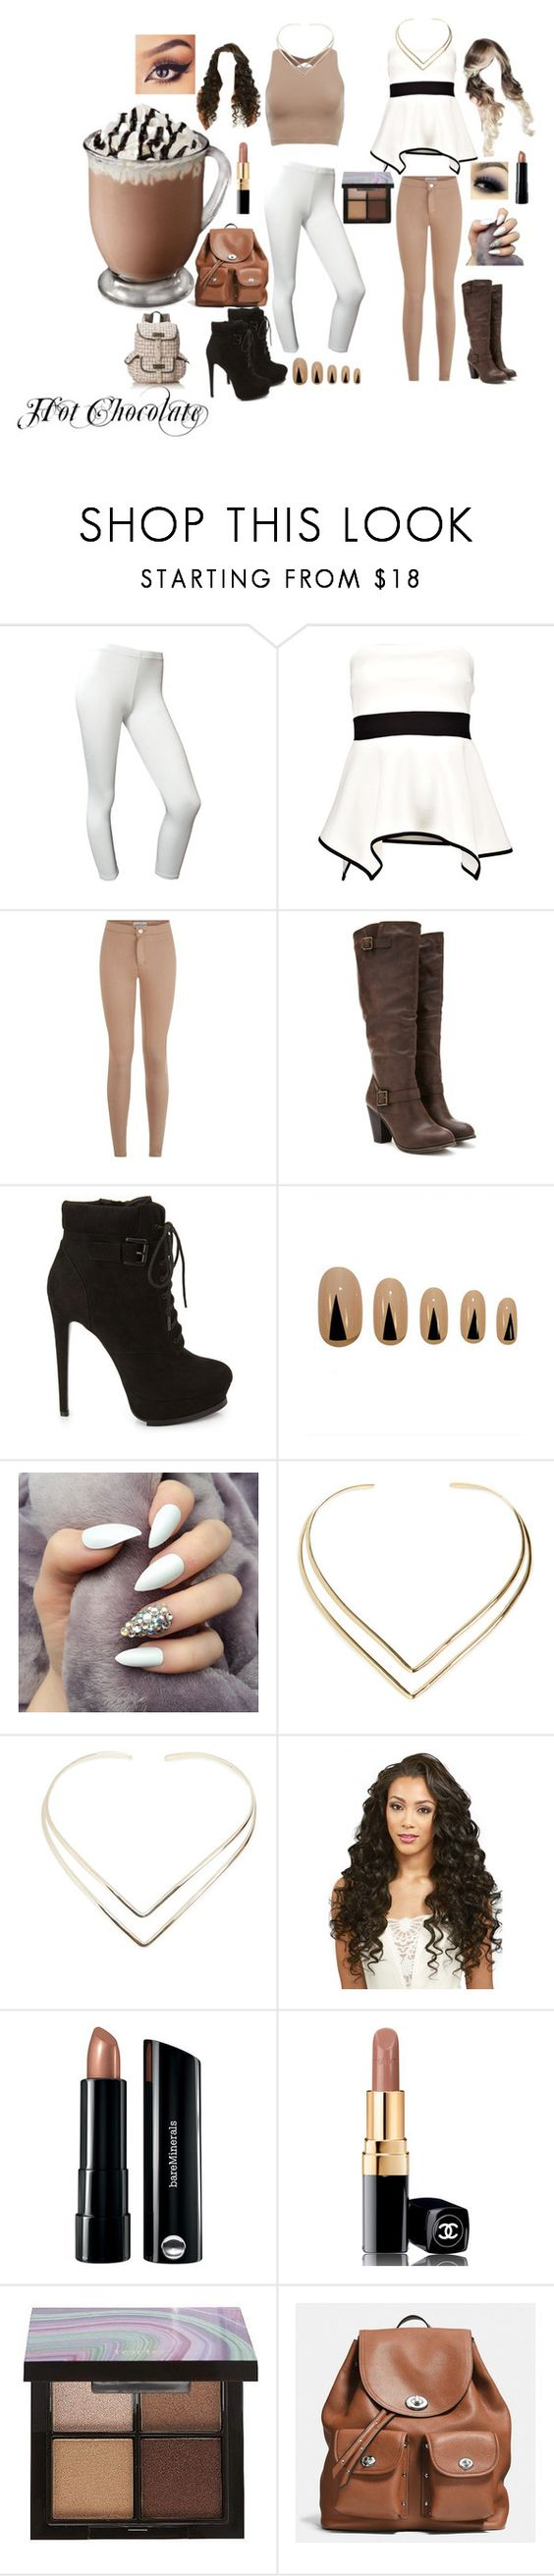 """Hot chocolate inspired outfits"" by princesscupid98 ❤ liked on Polyvore featuring Boohoo, Forever 21, Static Nails, Natalie B, Bare Escentuals, Chanel, tarte, Coach and Wild Pair"